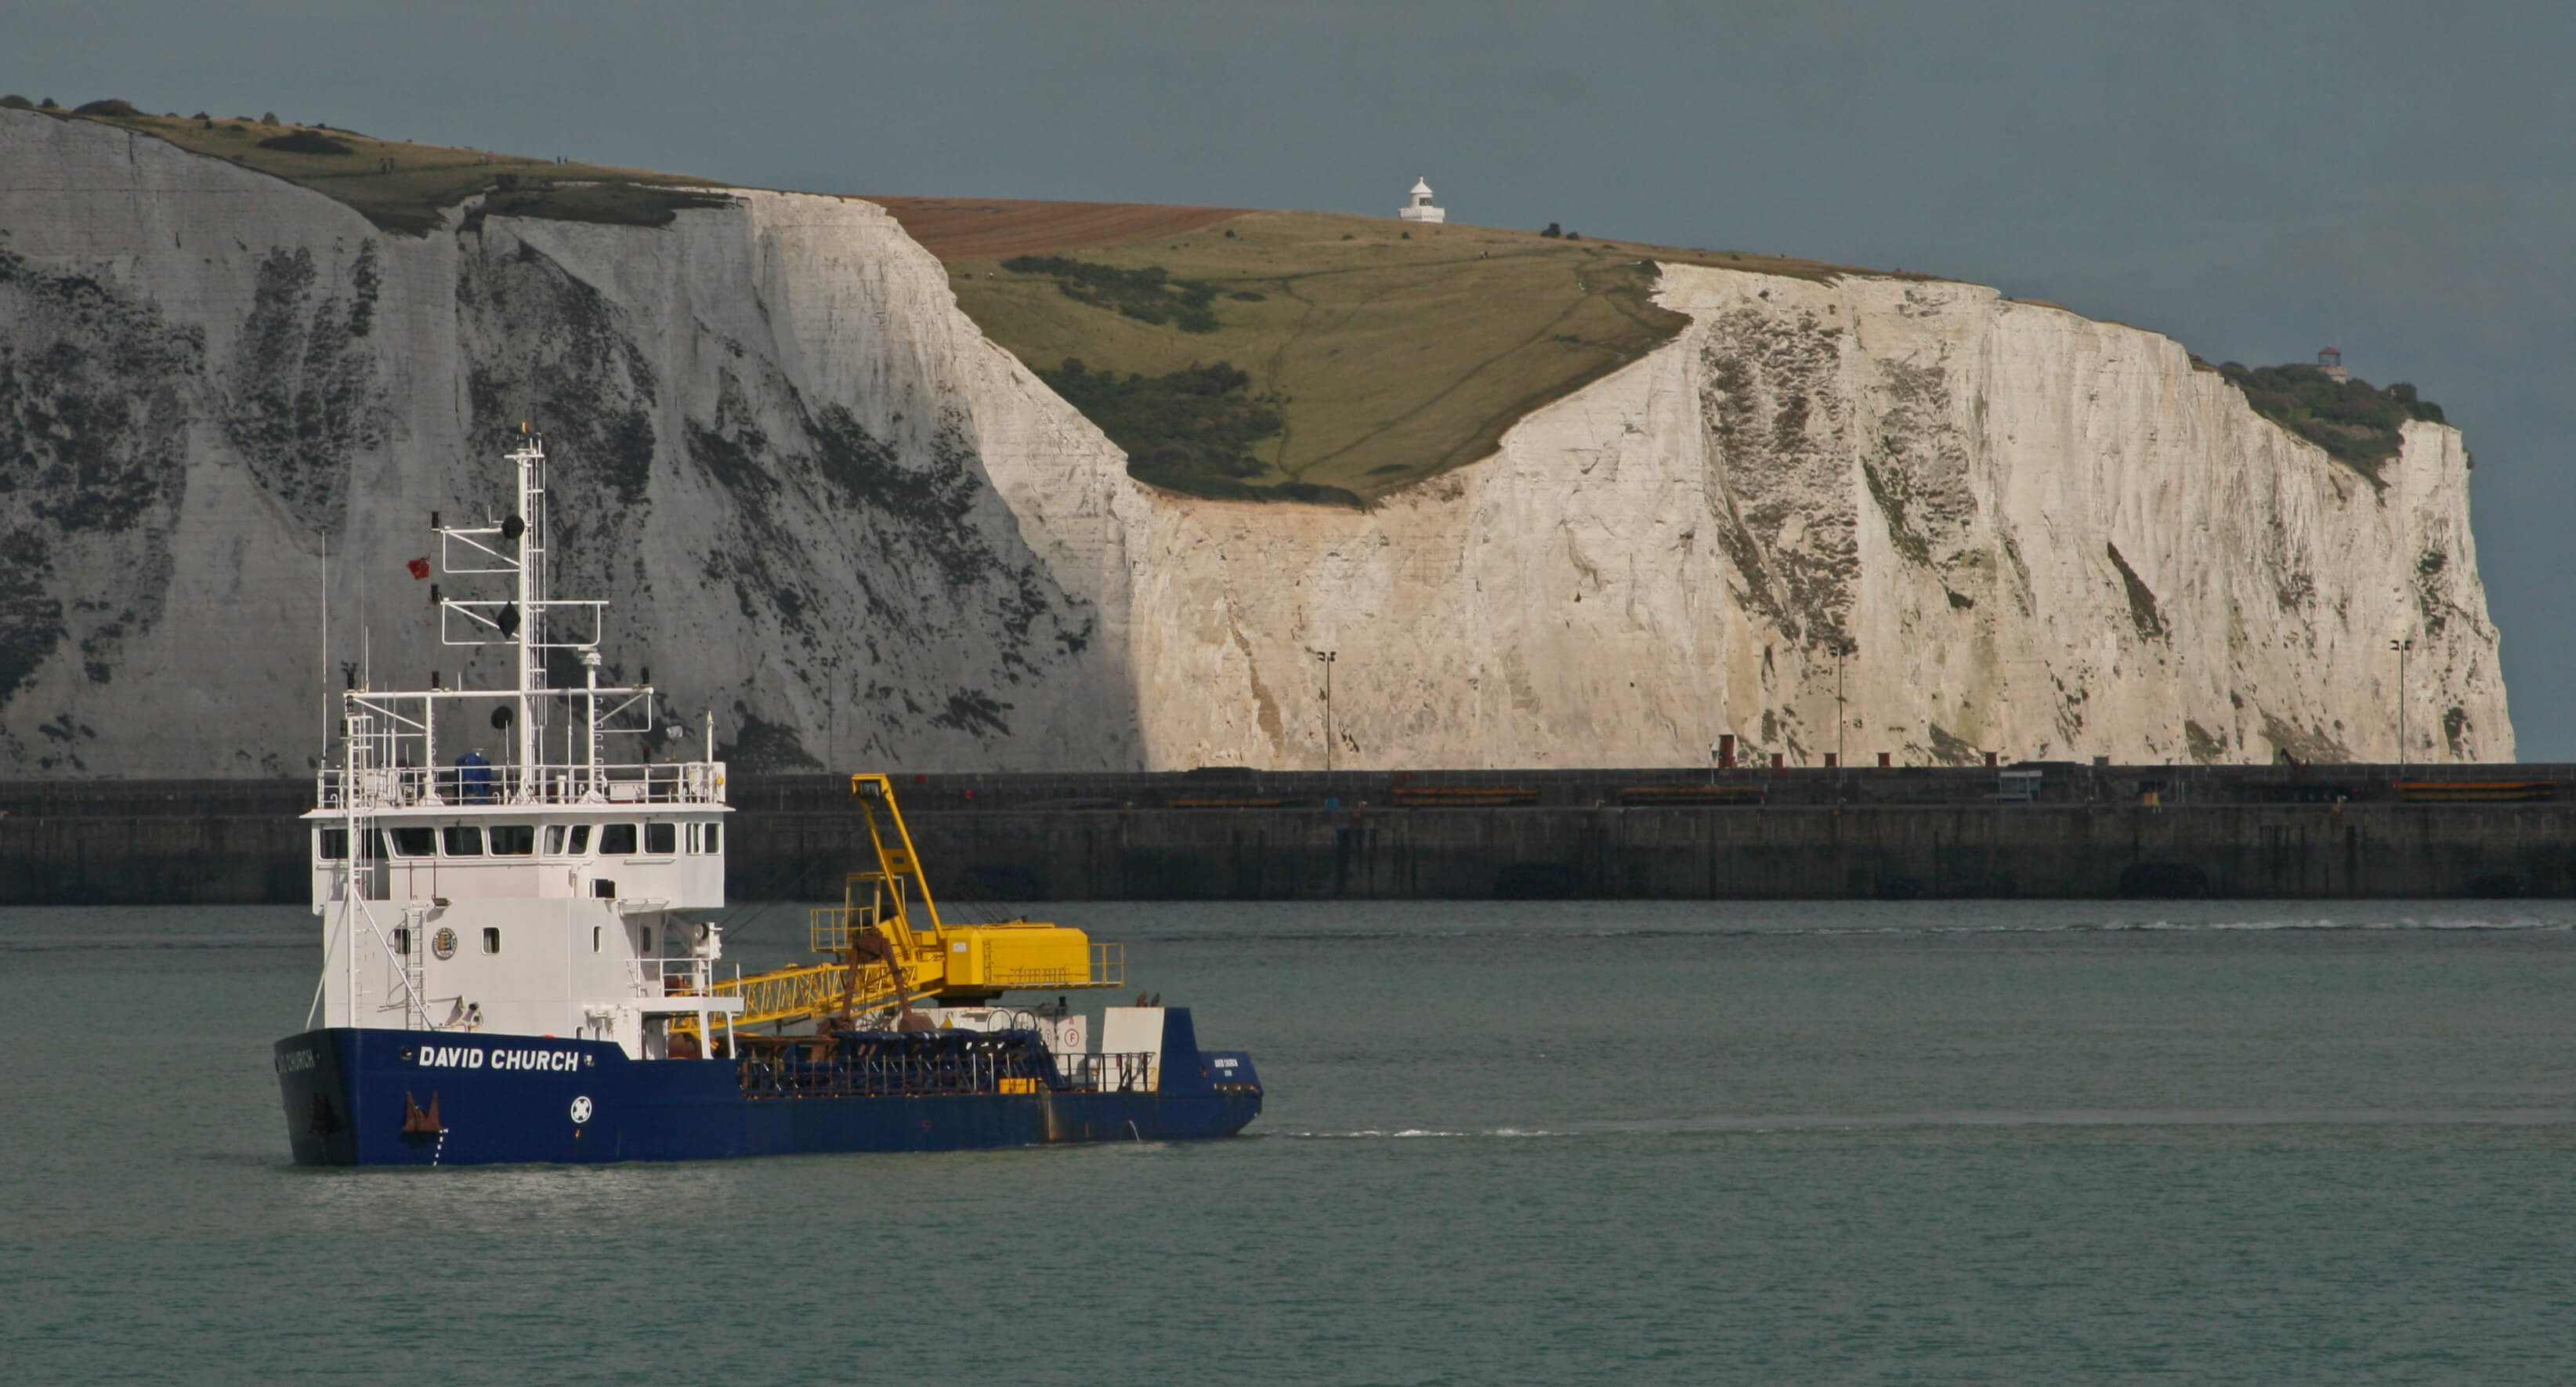 Dover Harbour Board dredger David Church in Eastern Docks with the white cliffs in the background. © Glen/Flickr